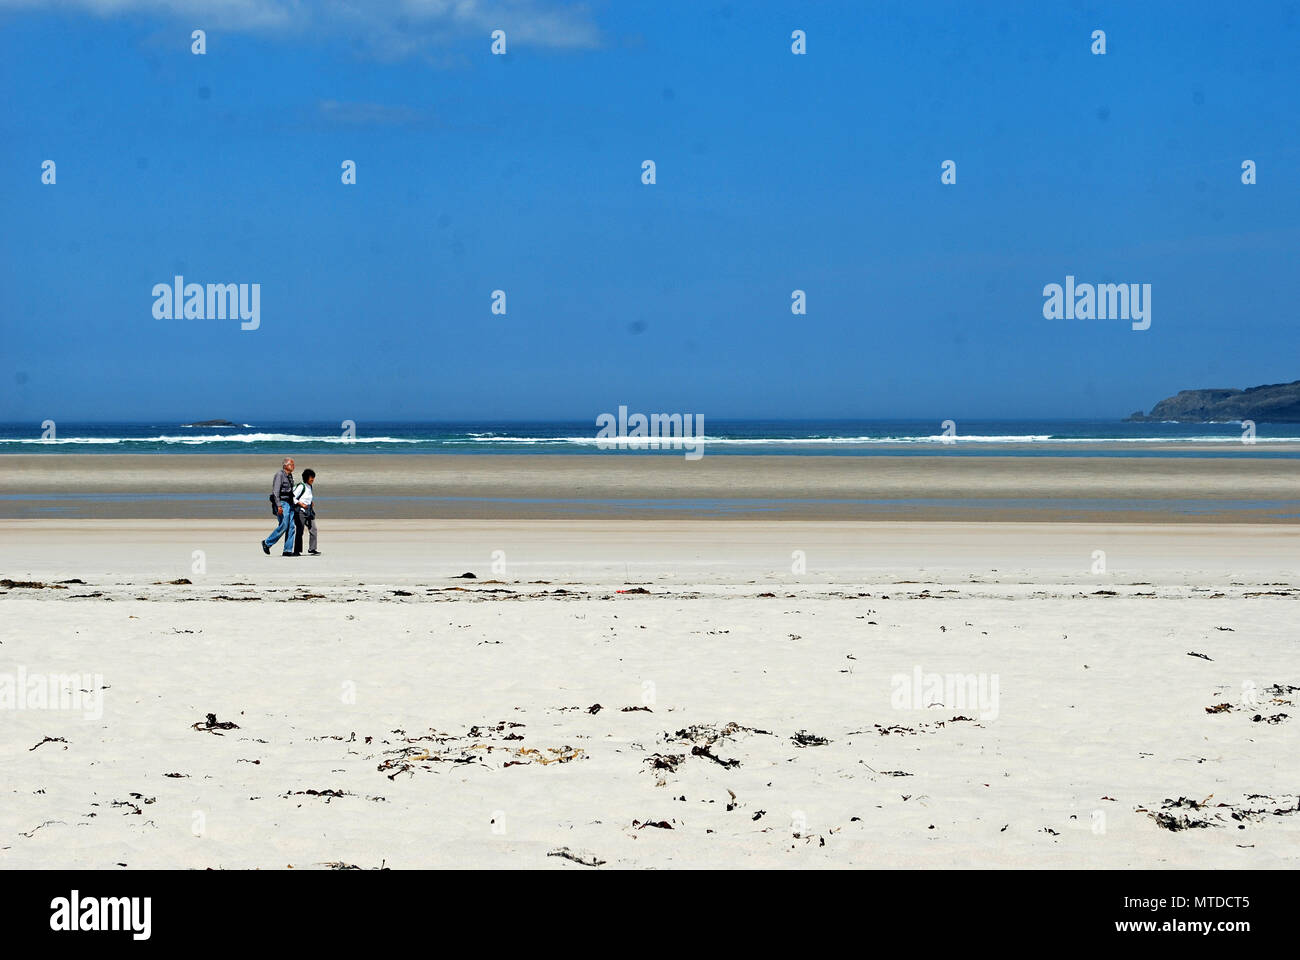 Ardara, County Donegal, Ireland. 29th May 2018 A tourist couple walk on Maghera beach, Ardara, on the hottest day in Ireland so far this year. Credit: Peter Alexander/Alamy Live News - Stock Image